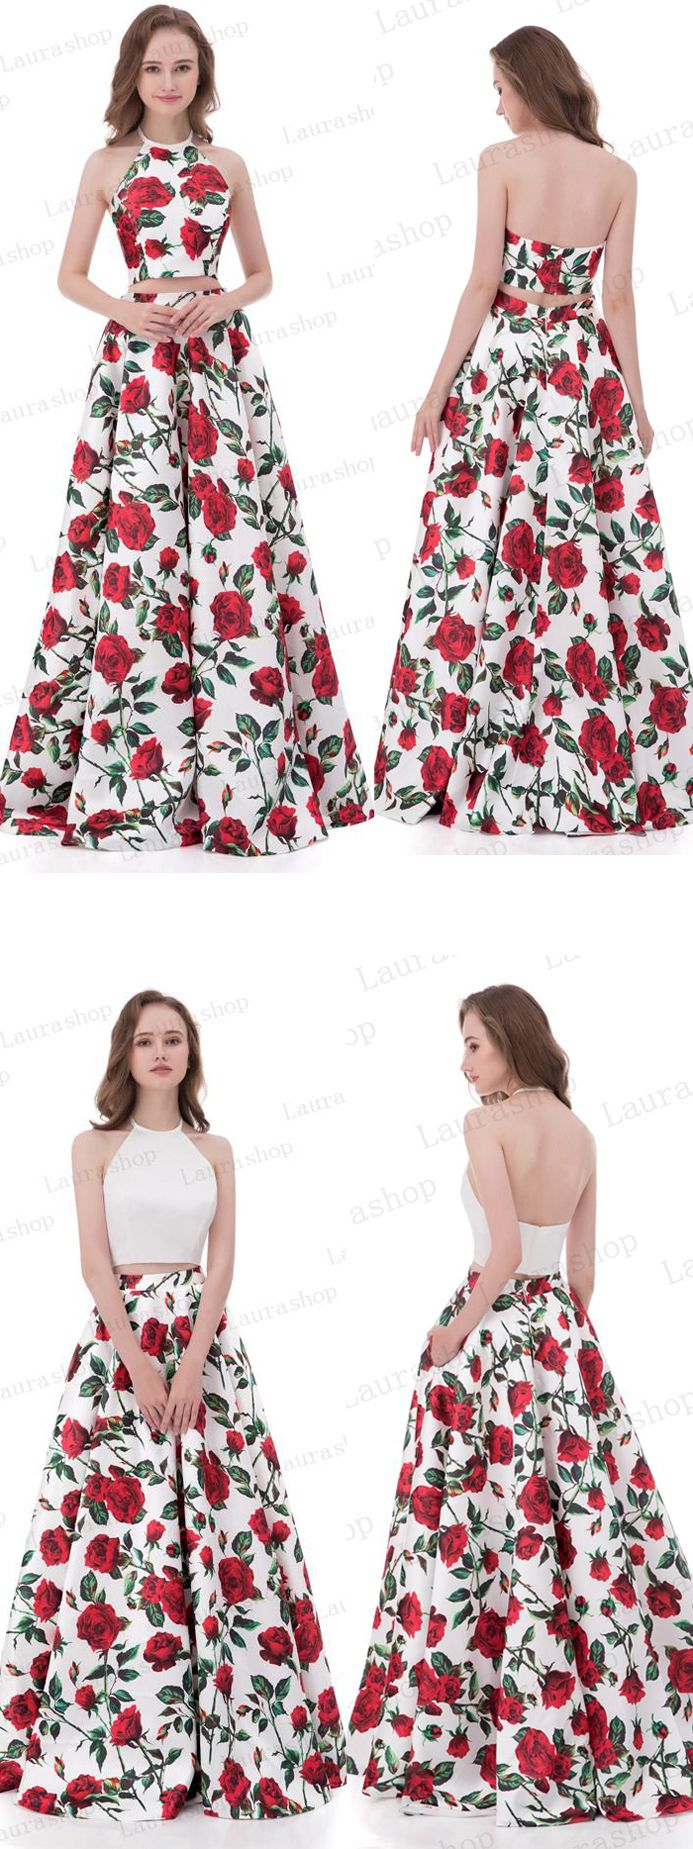 New arrival pieces printed fabric red rose prom dresses evening